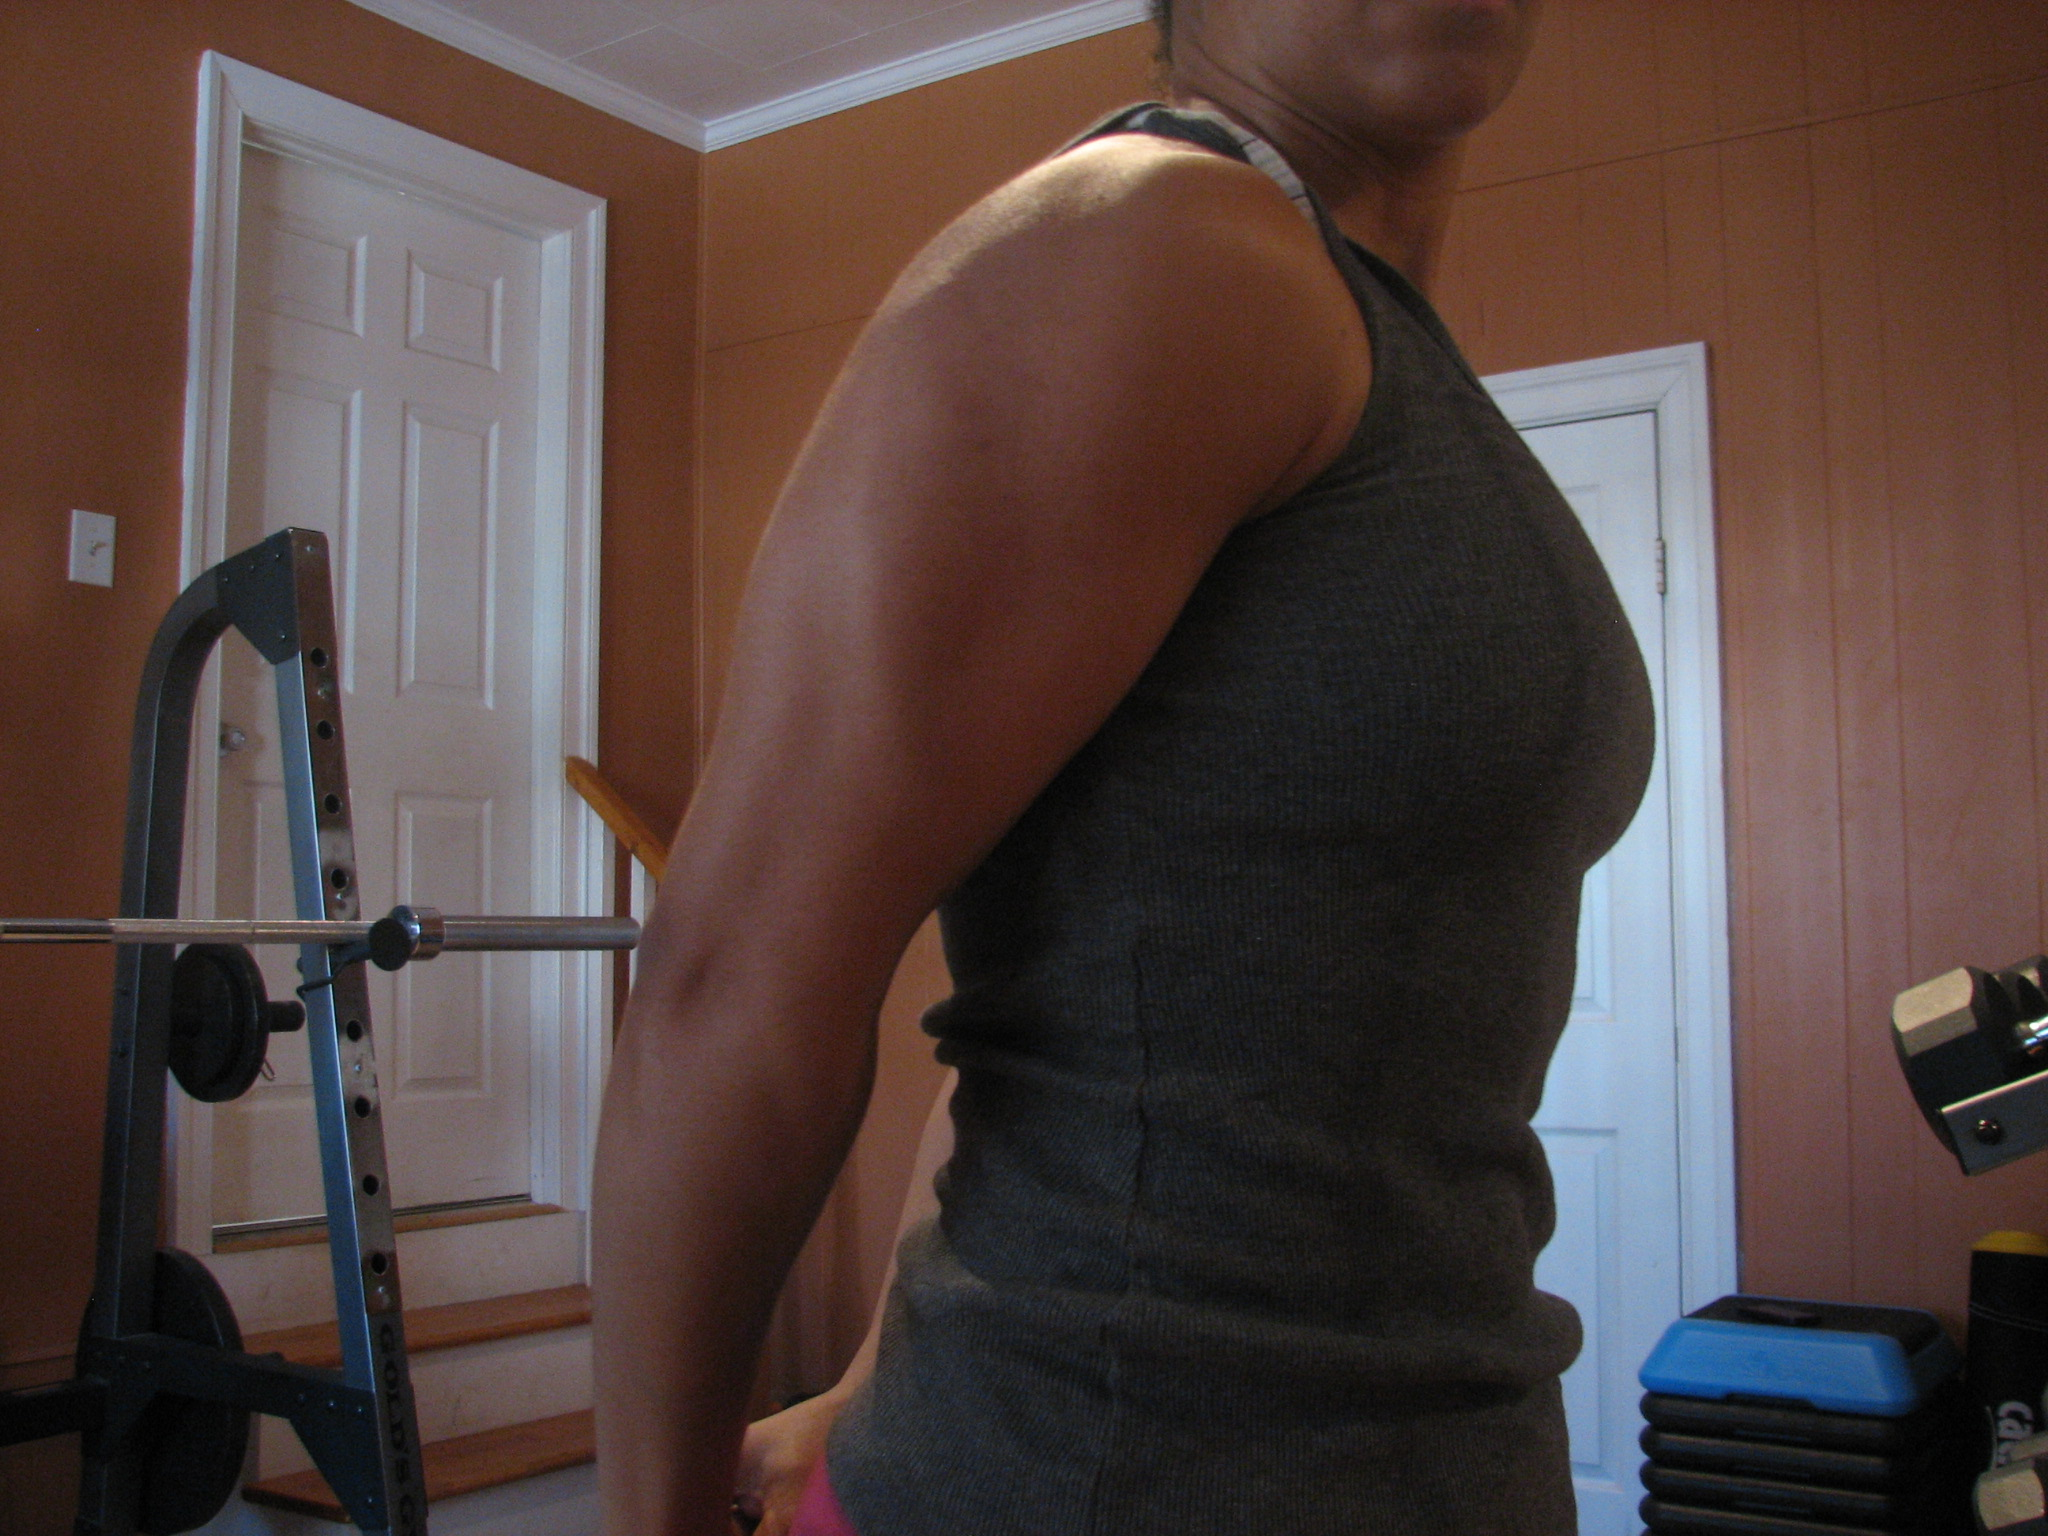 Weight Lifting For Women – My Arms Are Getting Bulky